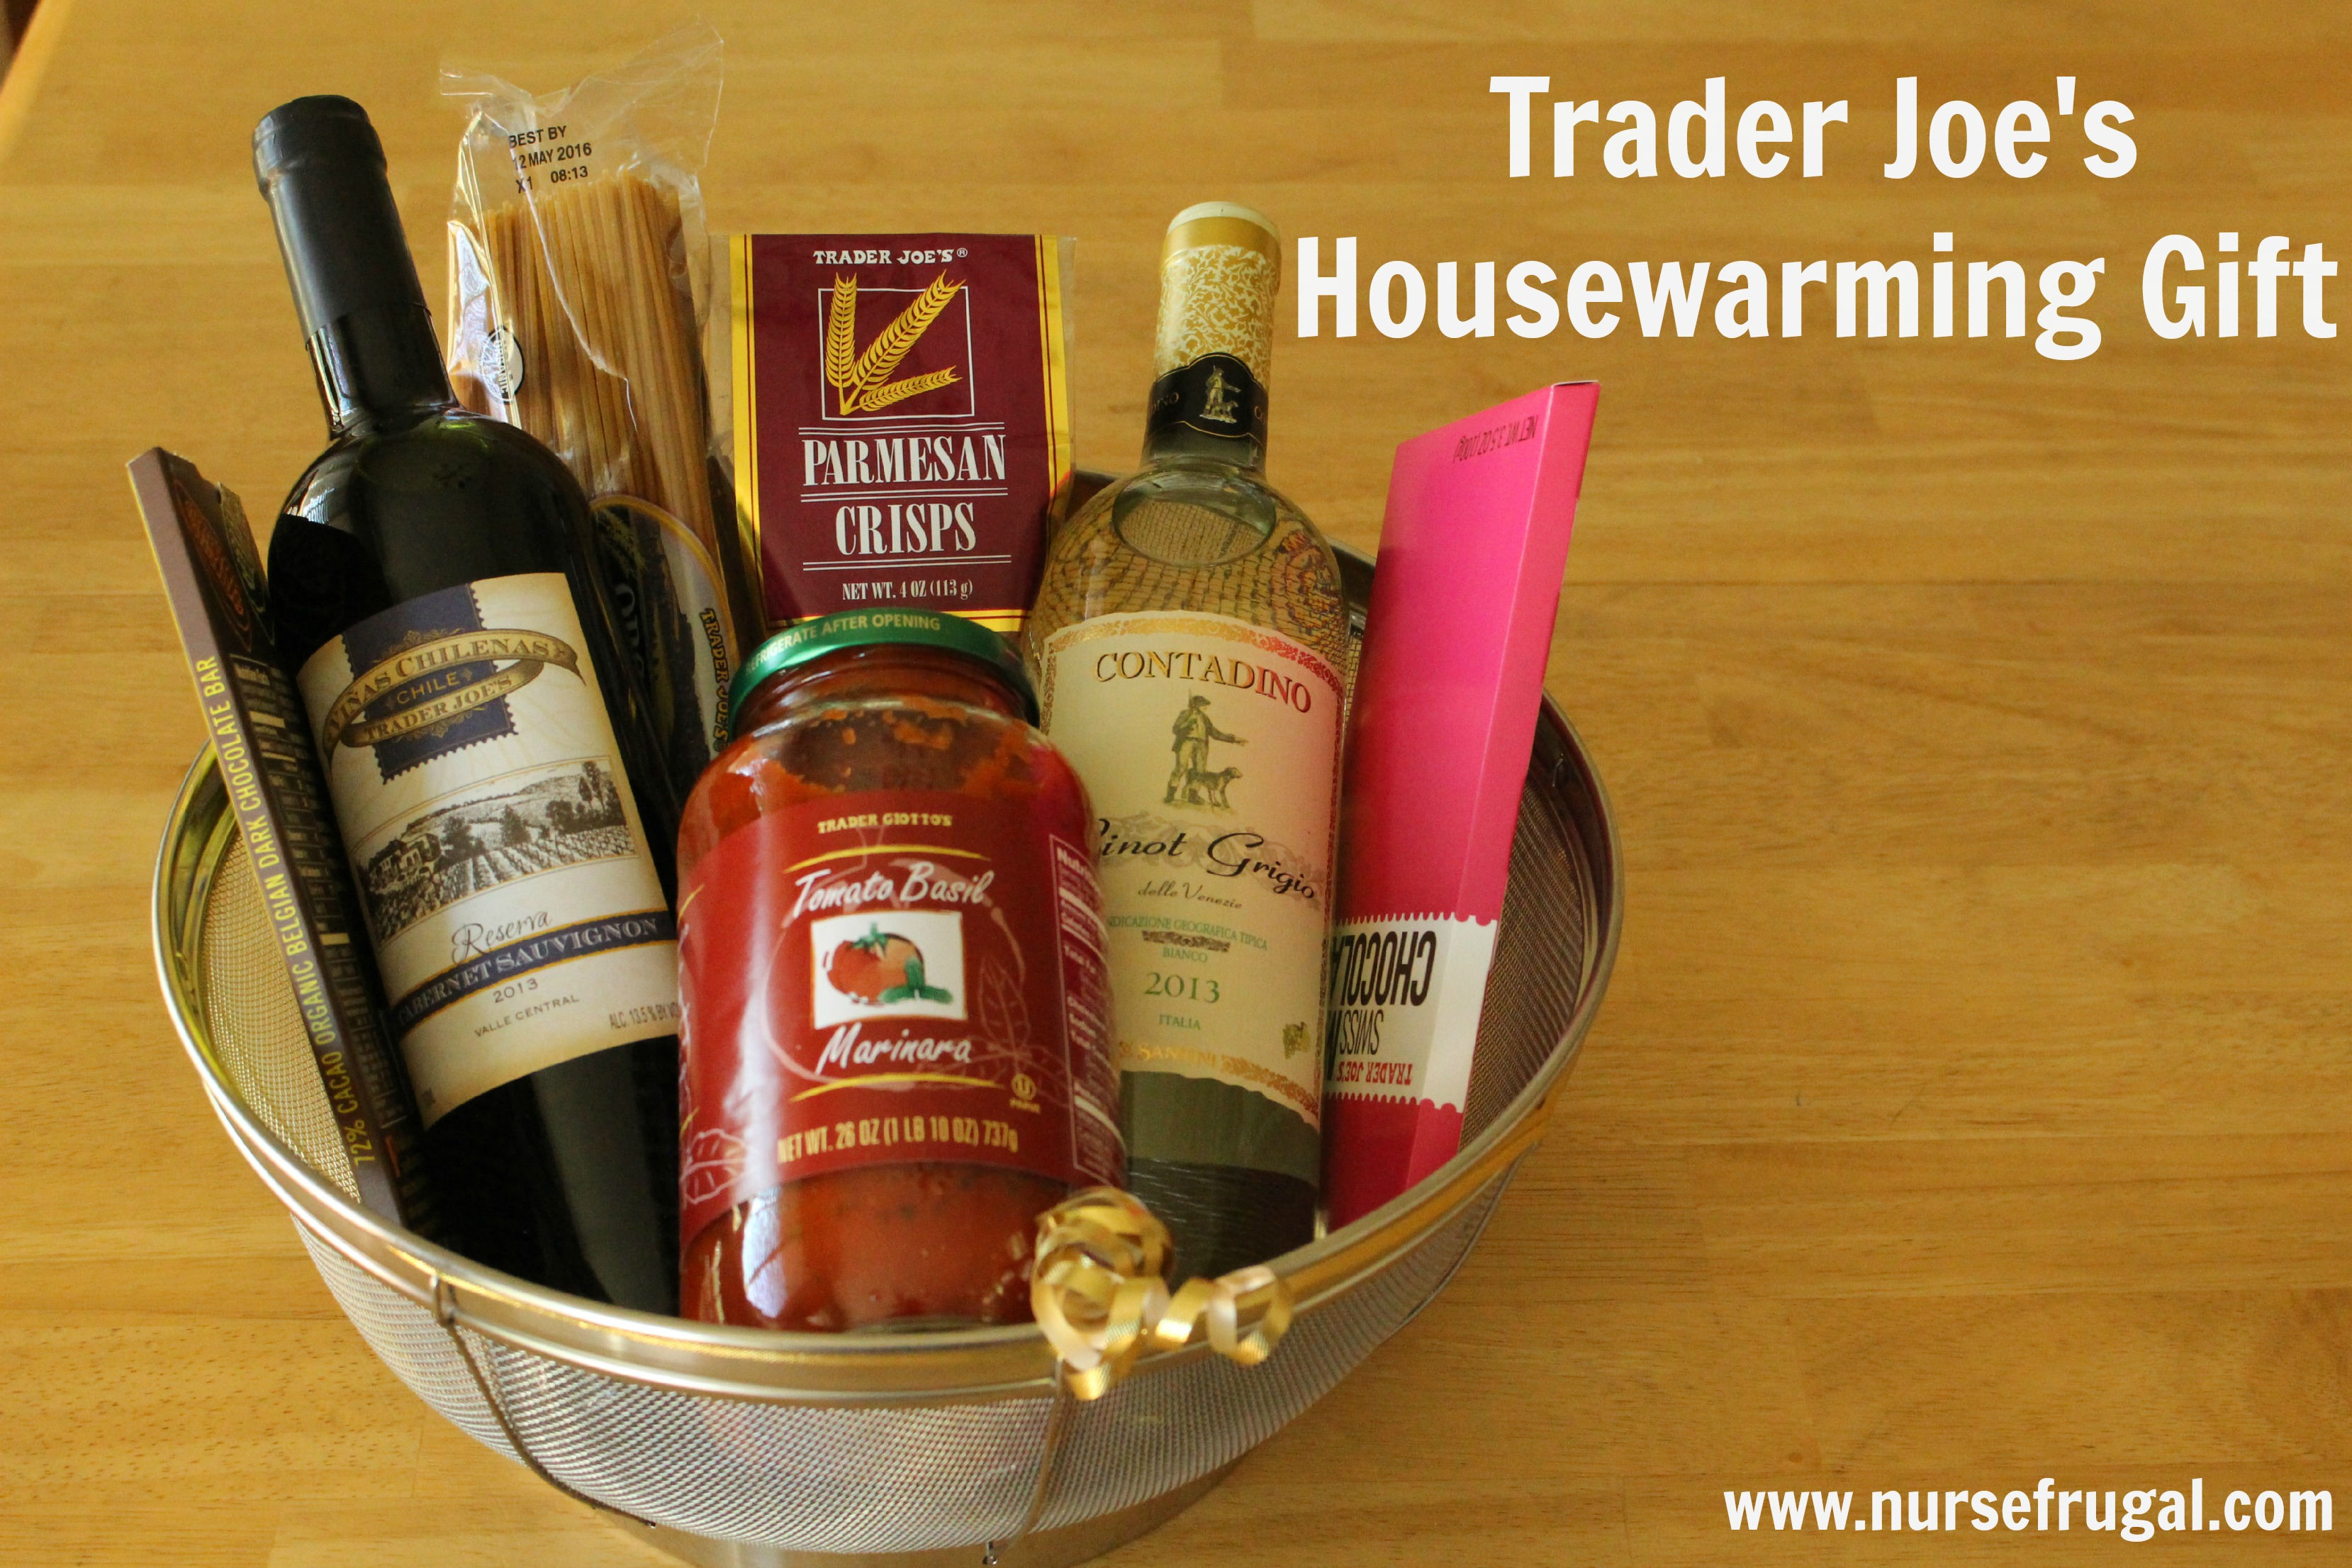 Housewarming Gift Idea Nurse Frugal